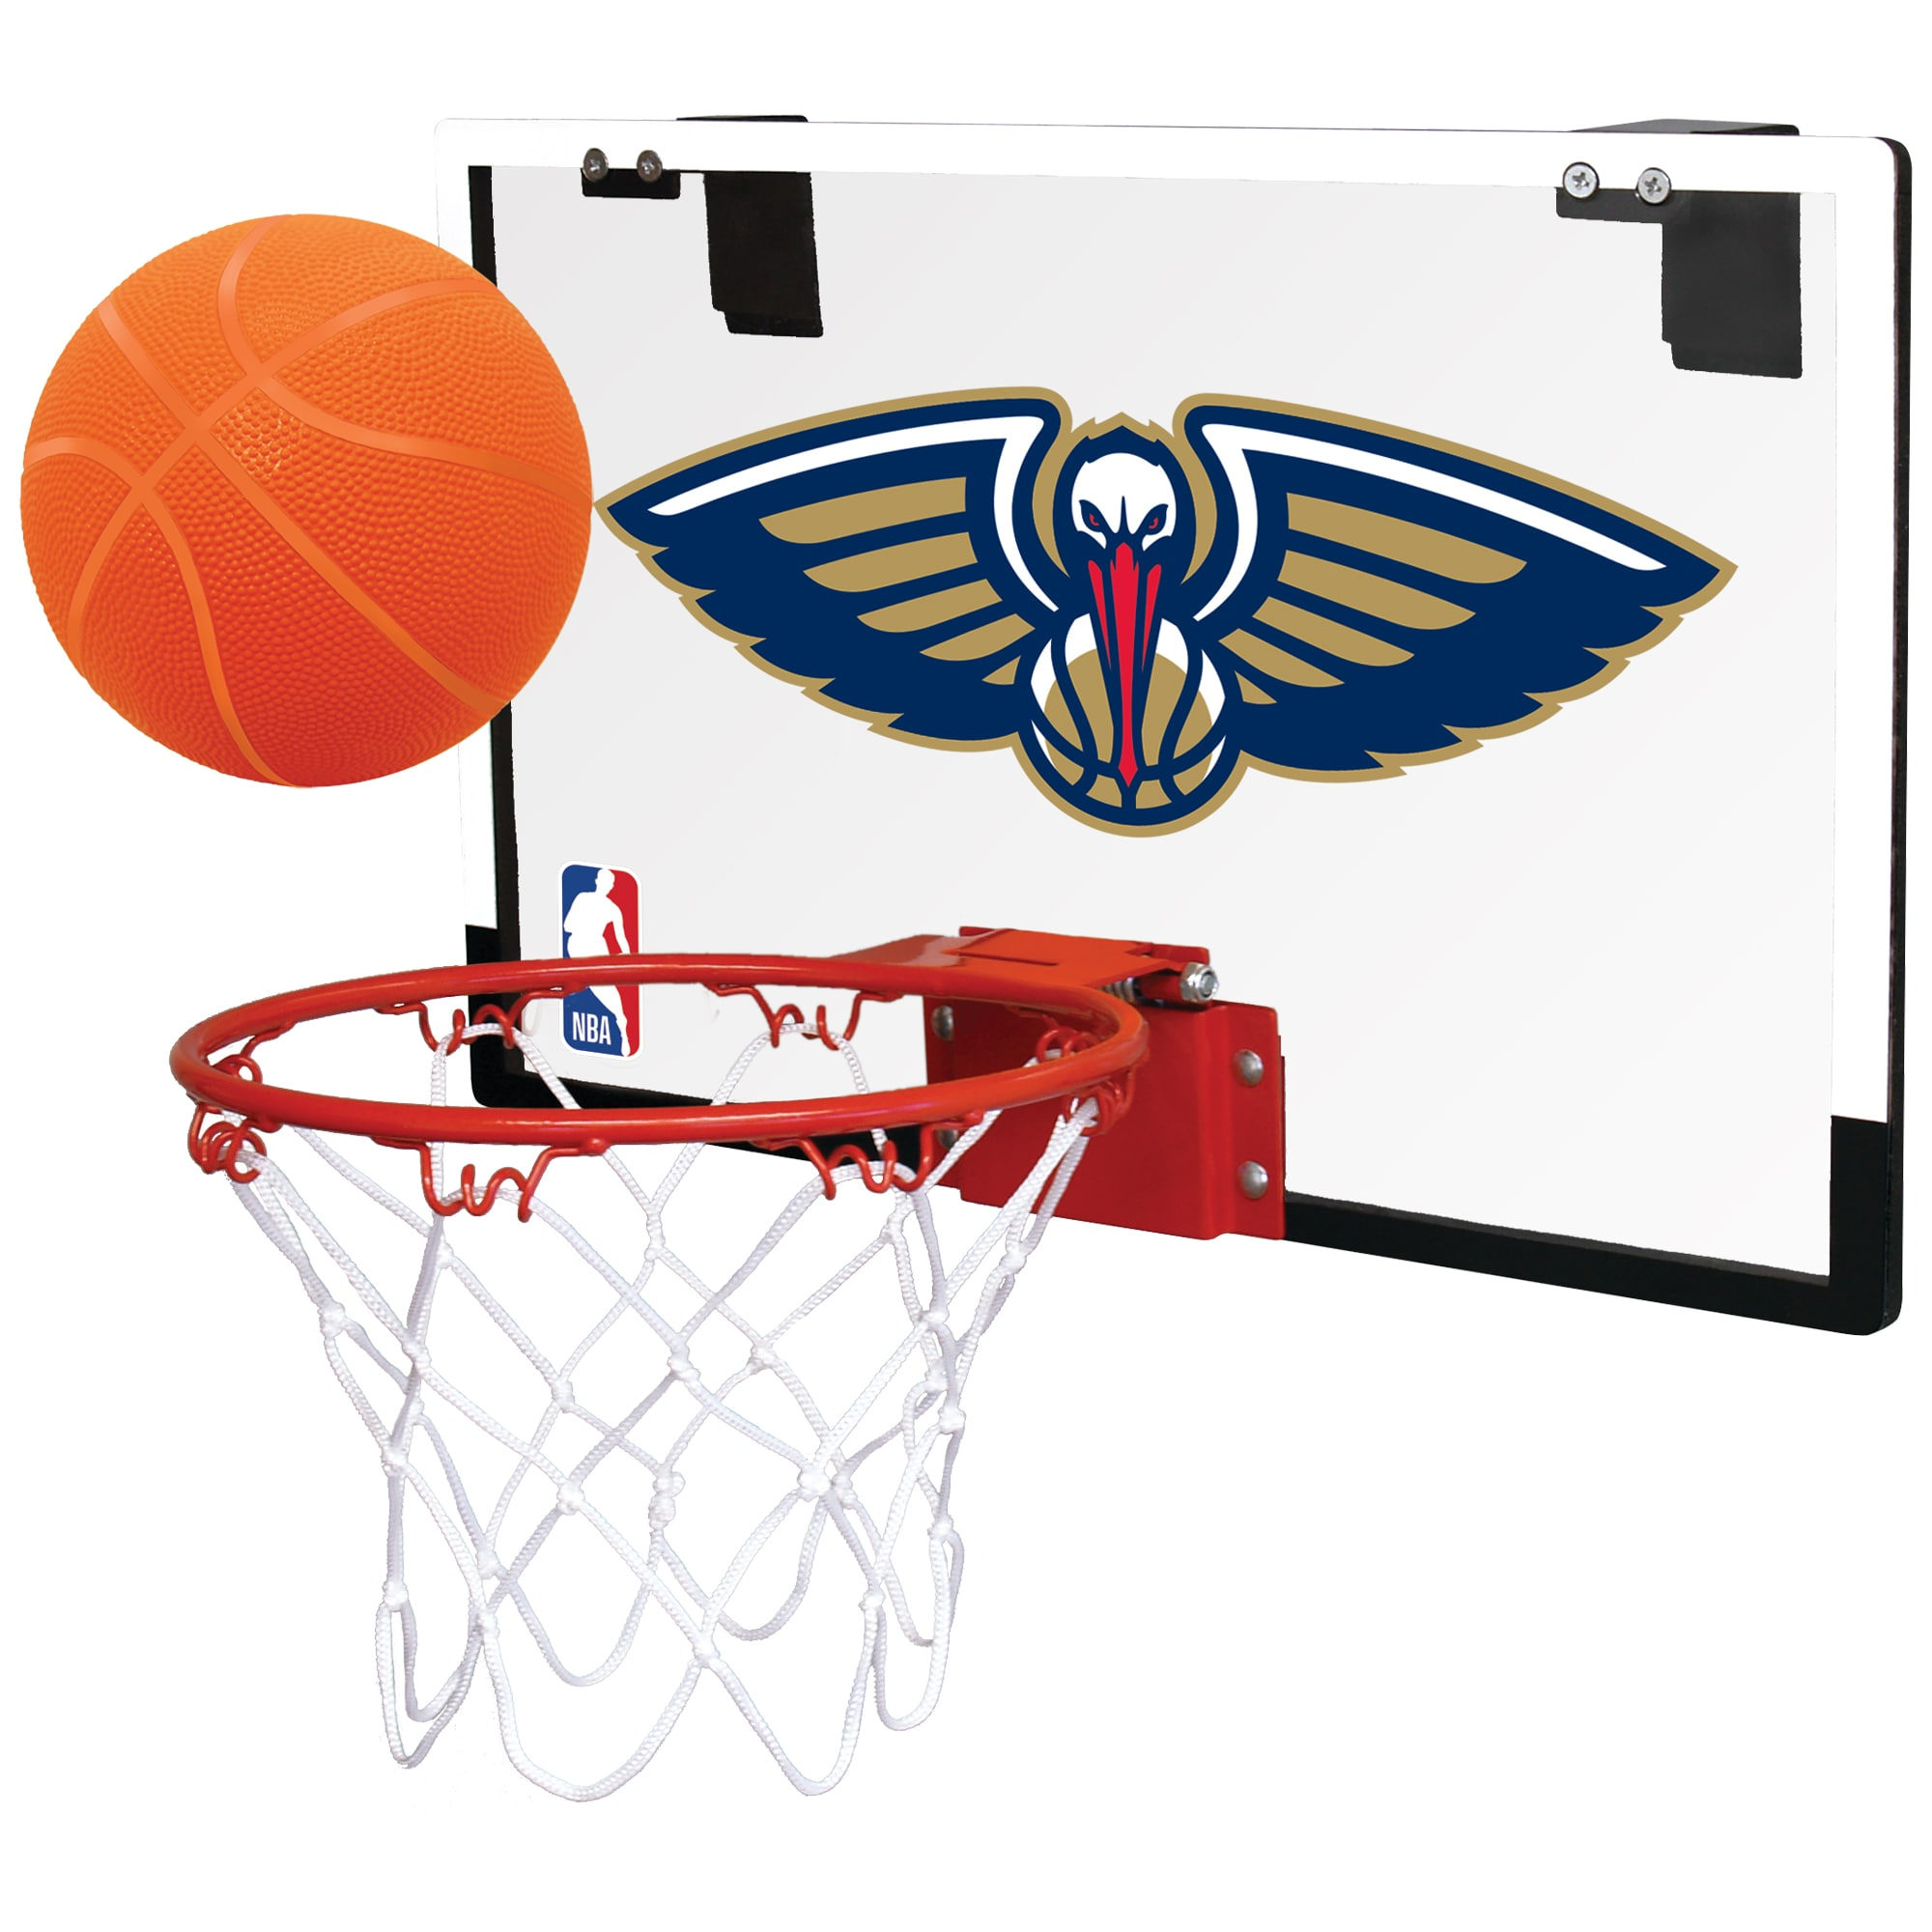 Washington Huskies Mini Basketball and Hoop Set